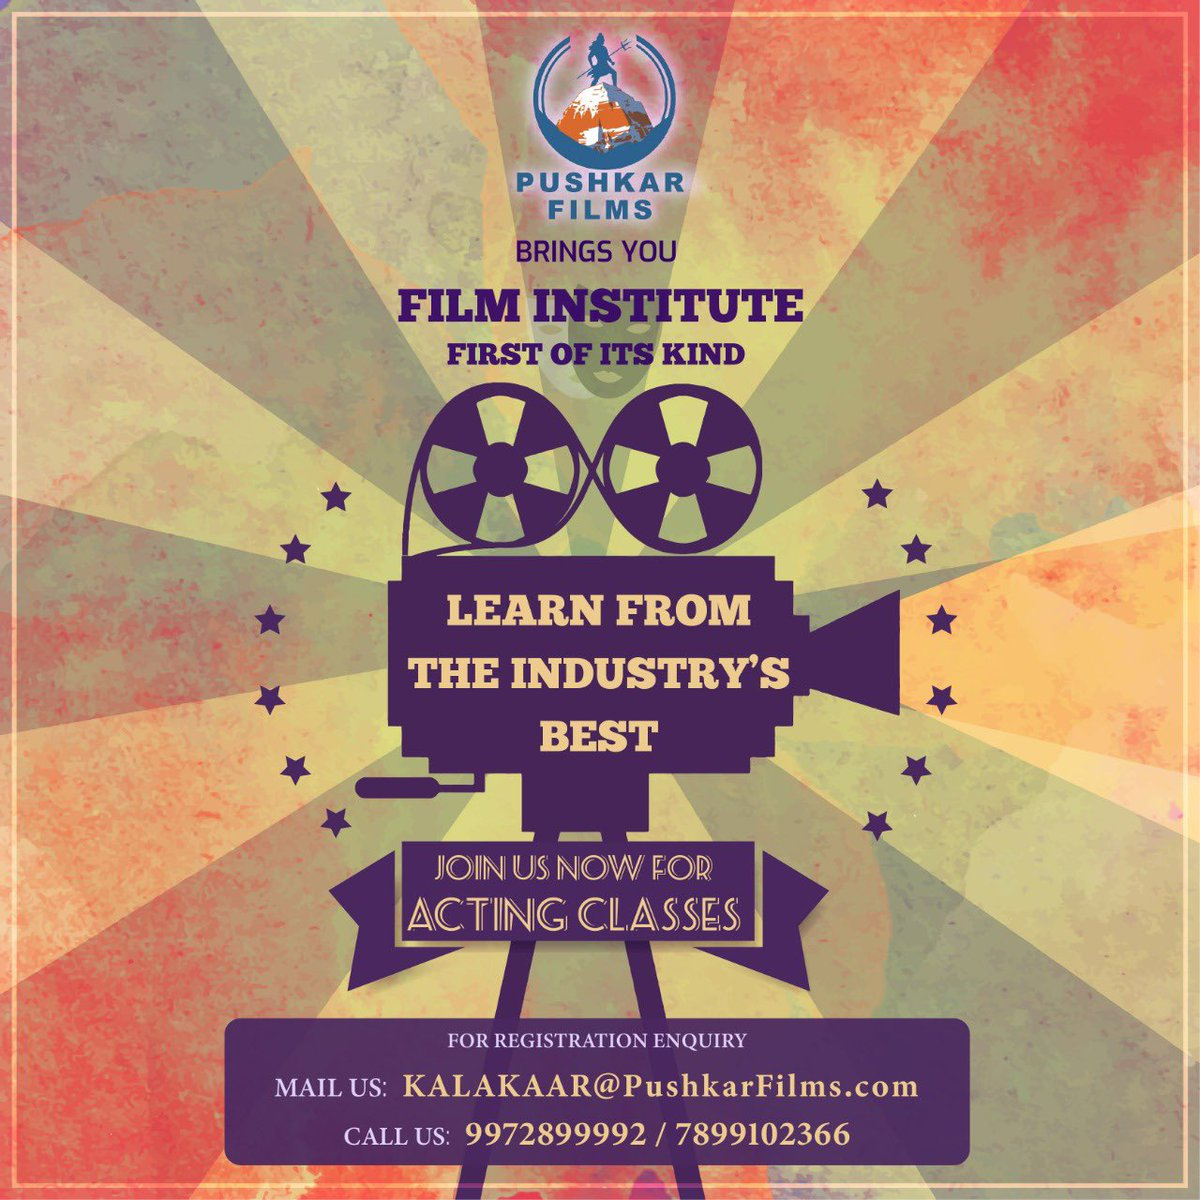 Here is your chance to gain holistic experience of acting and everything related to films, all under one roof. A film Institute which will hel your acting career take flight. So join us for a demo class on Saturday 20th September.   #PushkarFilms #filminstitute https://t.co/nmUyFY1iXd